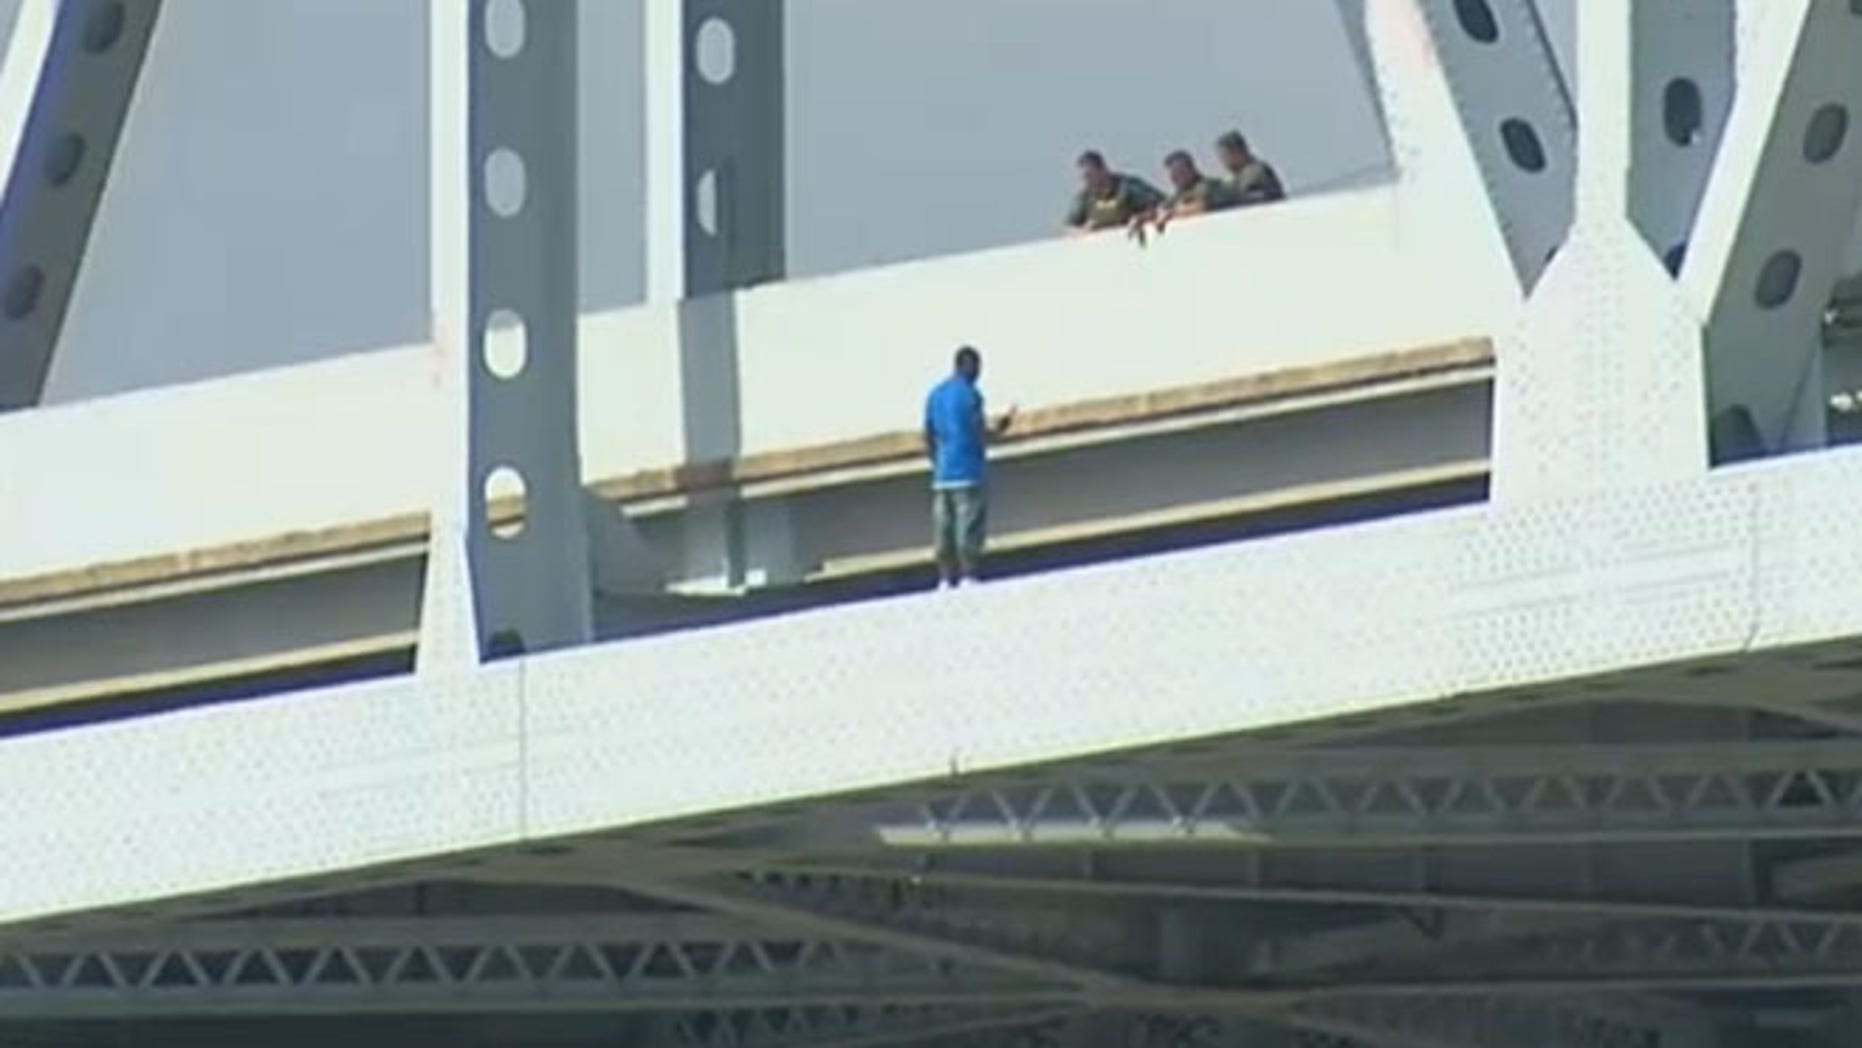 A man on the bridge was threatening to jump off.